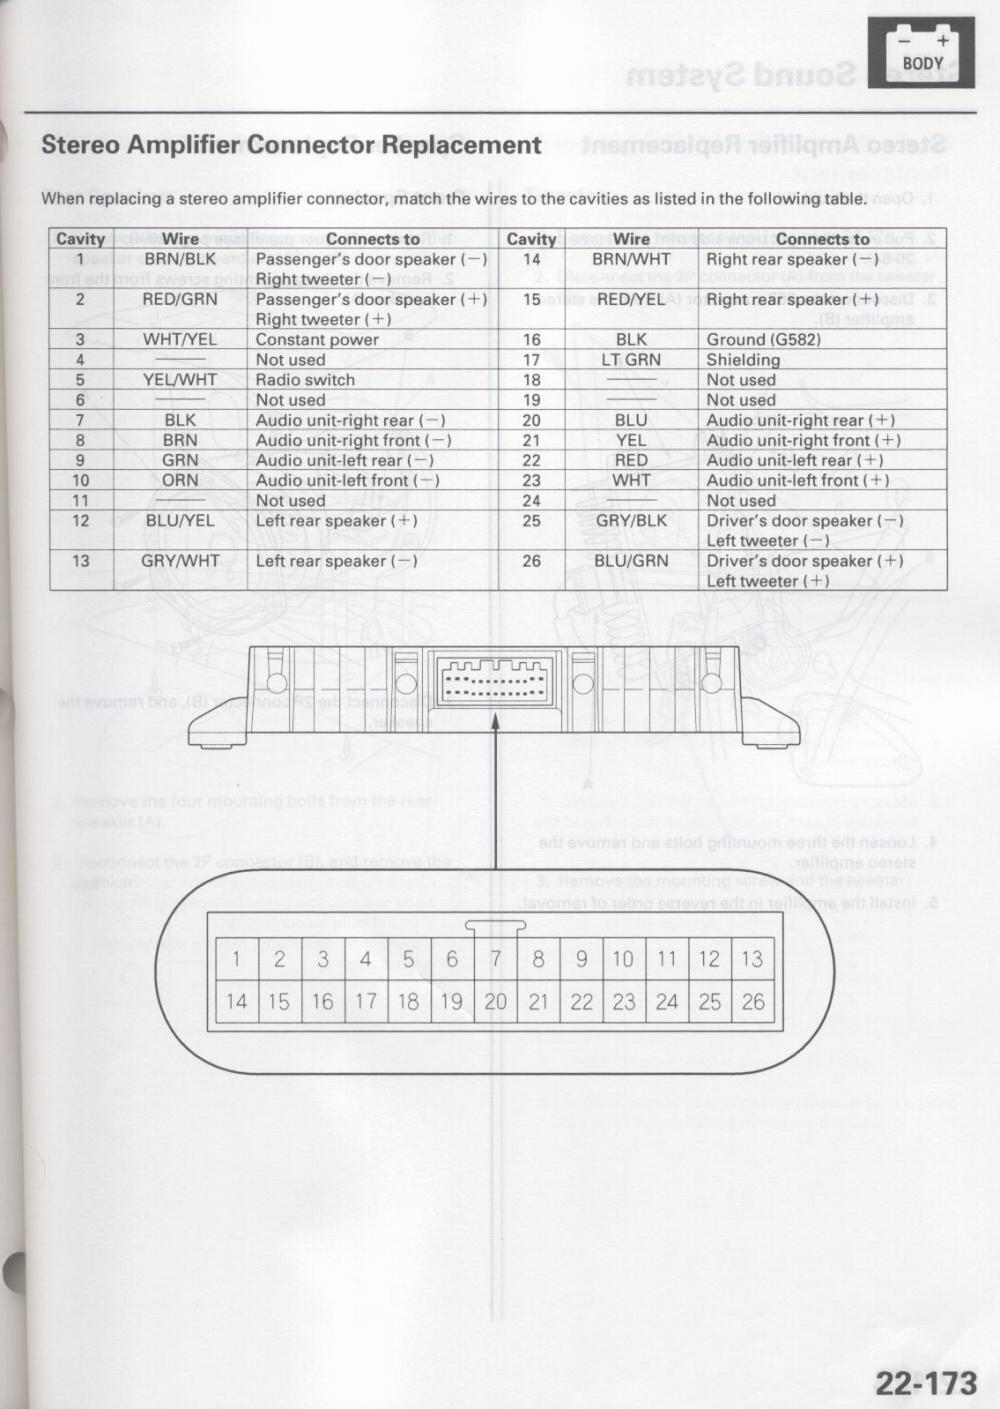 [SCHEMATICS_4FD]  Car Radio Stereo Audio Wiring Diagram Autoradio connector wire installation  schematic schema esquema de conexiones Anschlusskammern konektor | 2006 Acura Rsx Wiring Diagram |  | Schematics diagrams, car radio wiring diagram, freeware software